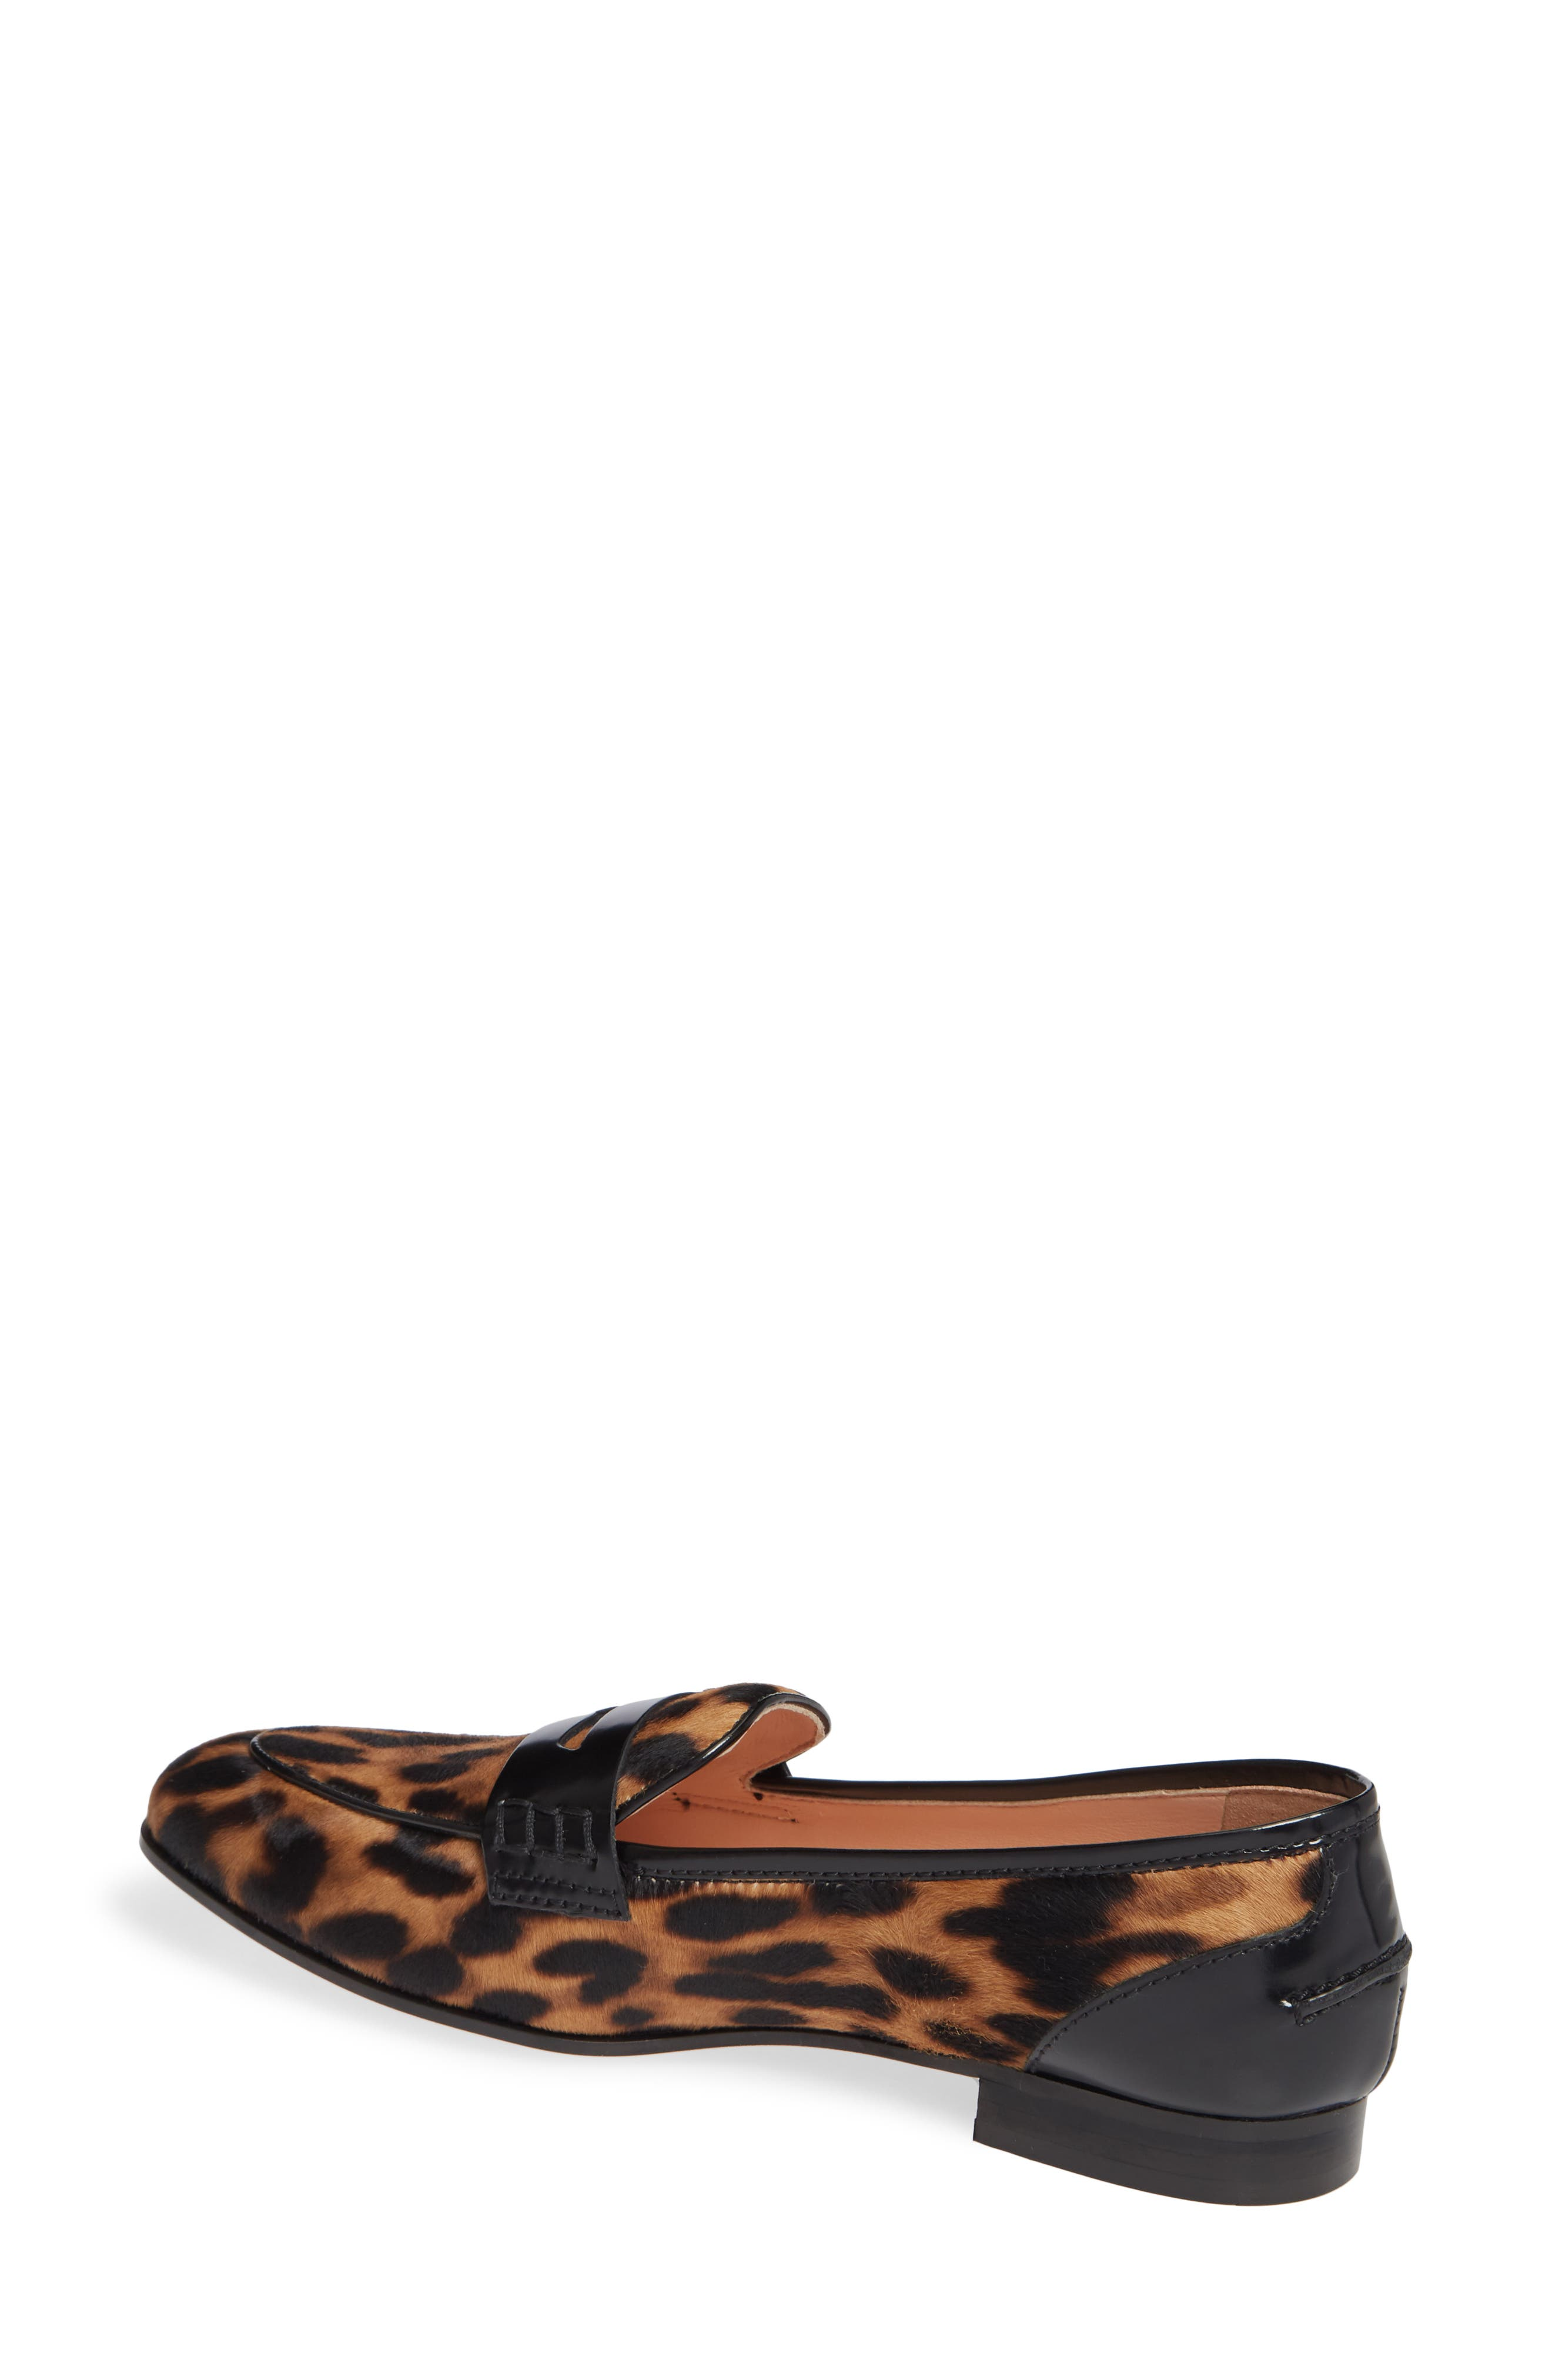 Academy Genuine Calf Hair Penny Loafer,                             Alternate thumbnail 2, color,                             200